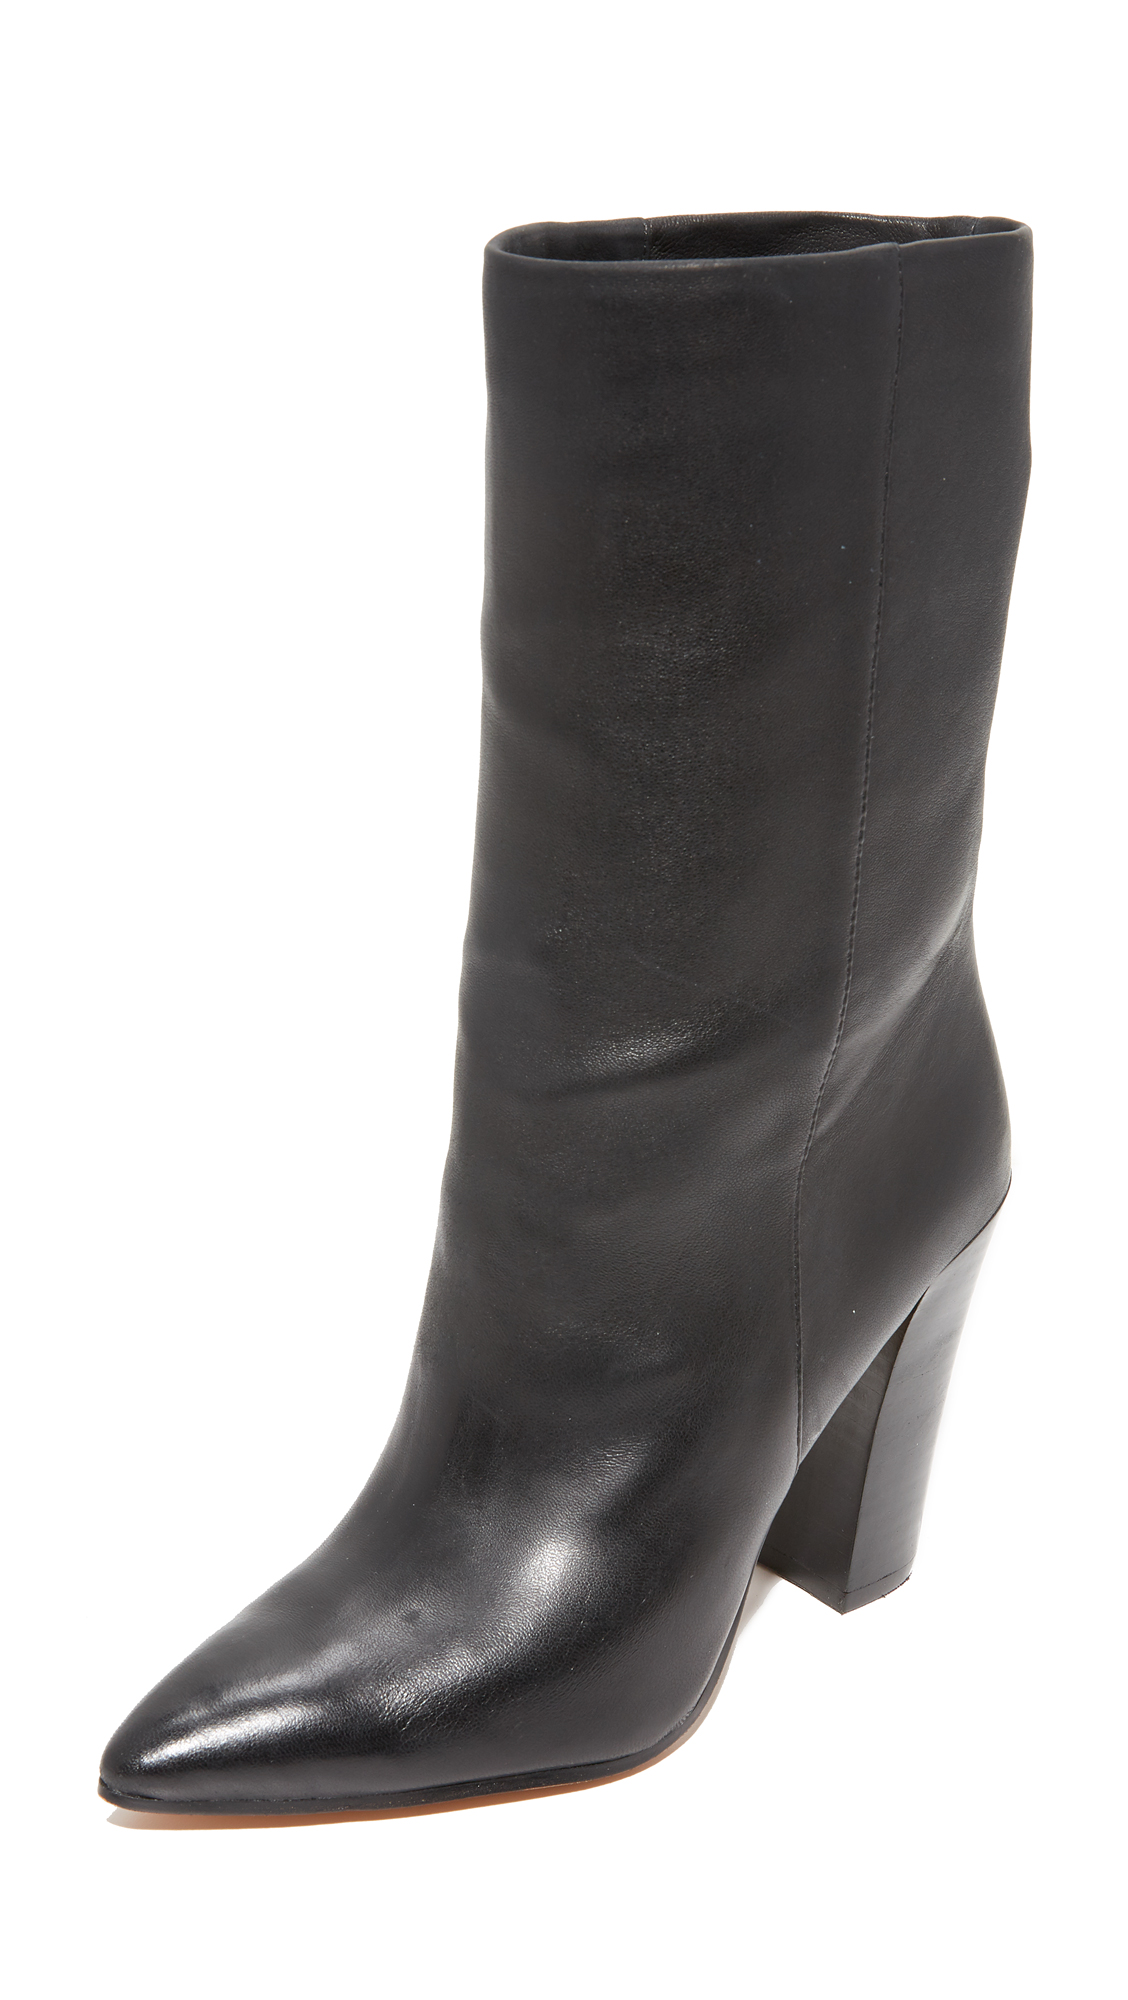 Dolce Vita Ethan Mid Calf Boots - Black